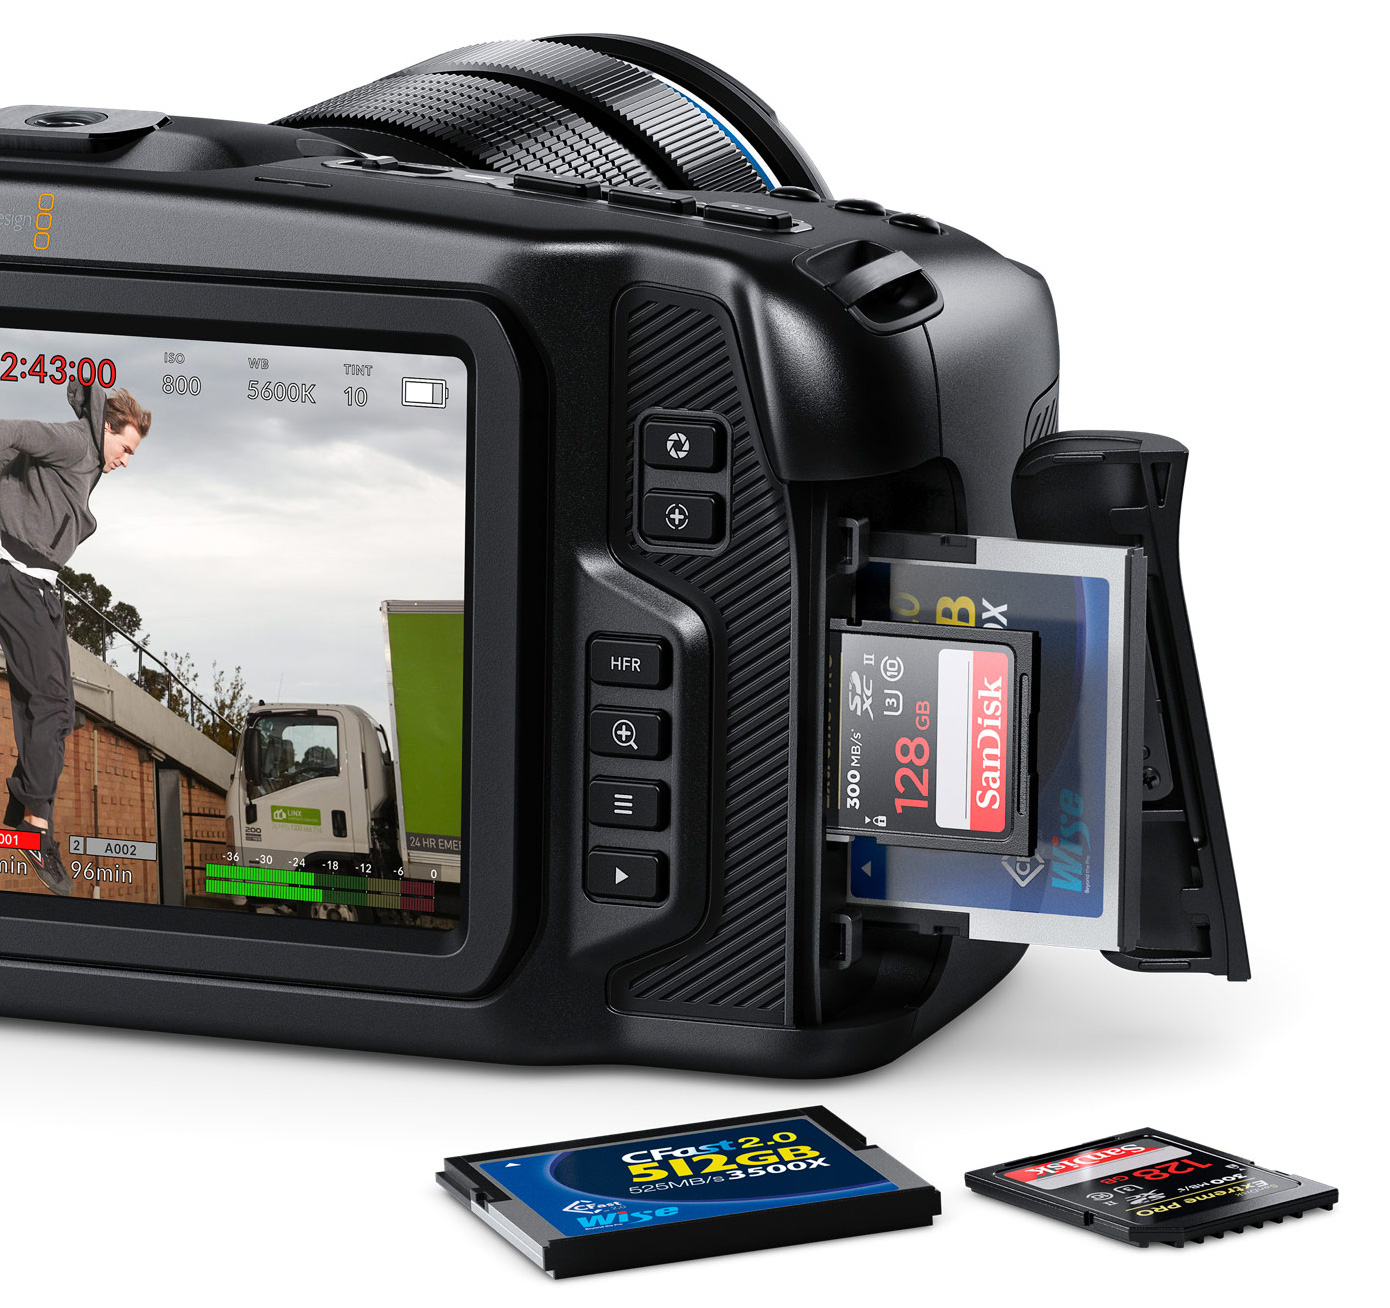 For $1295 the Blackmagic Pocket Cinema Camera 4K is completely nuts